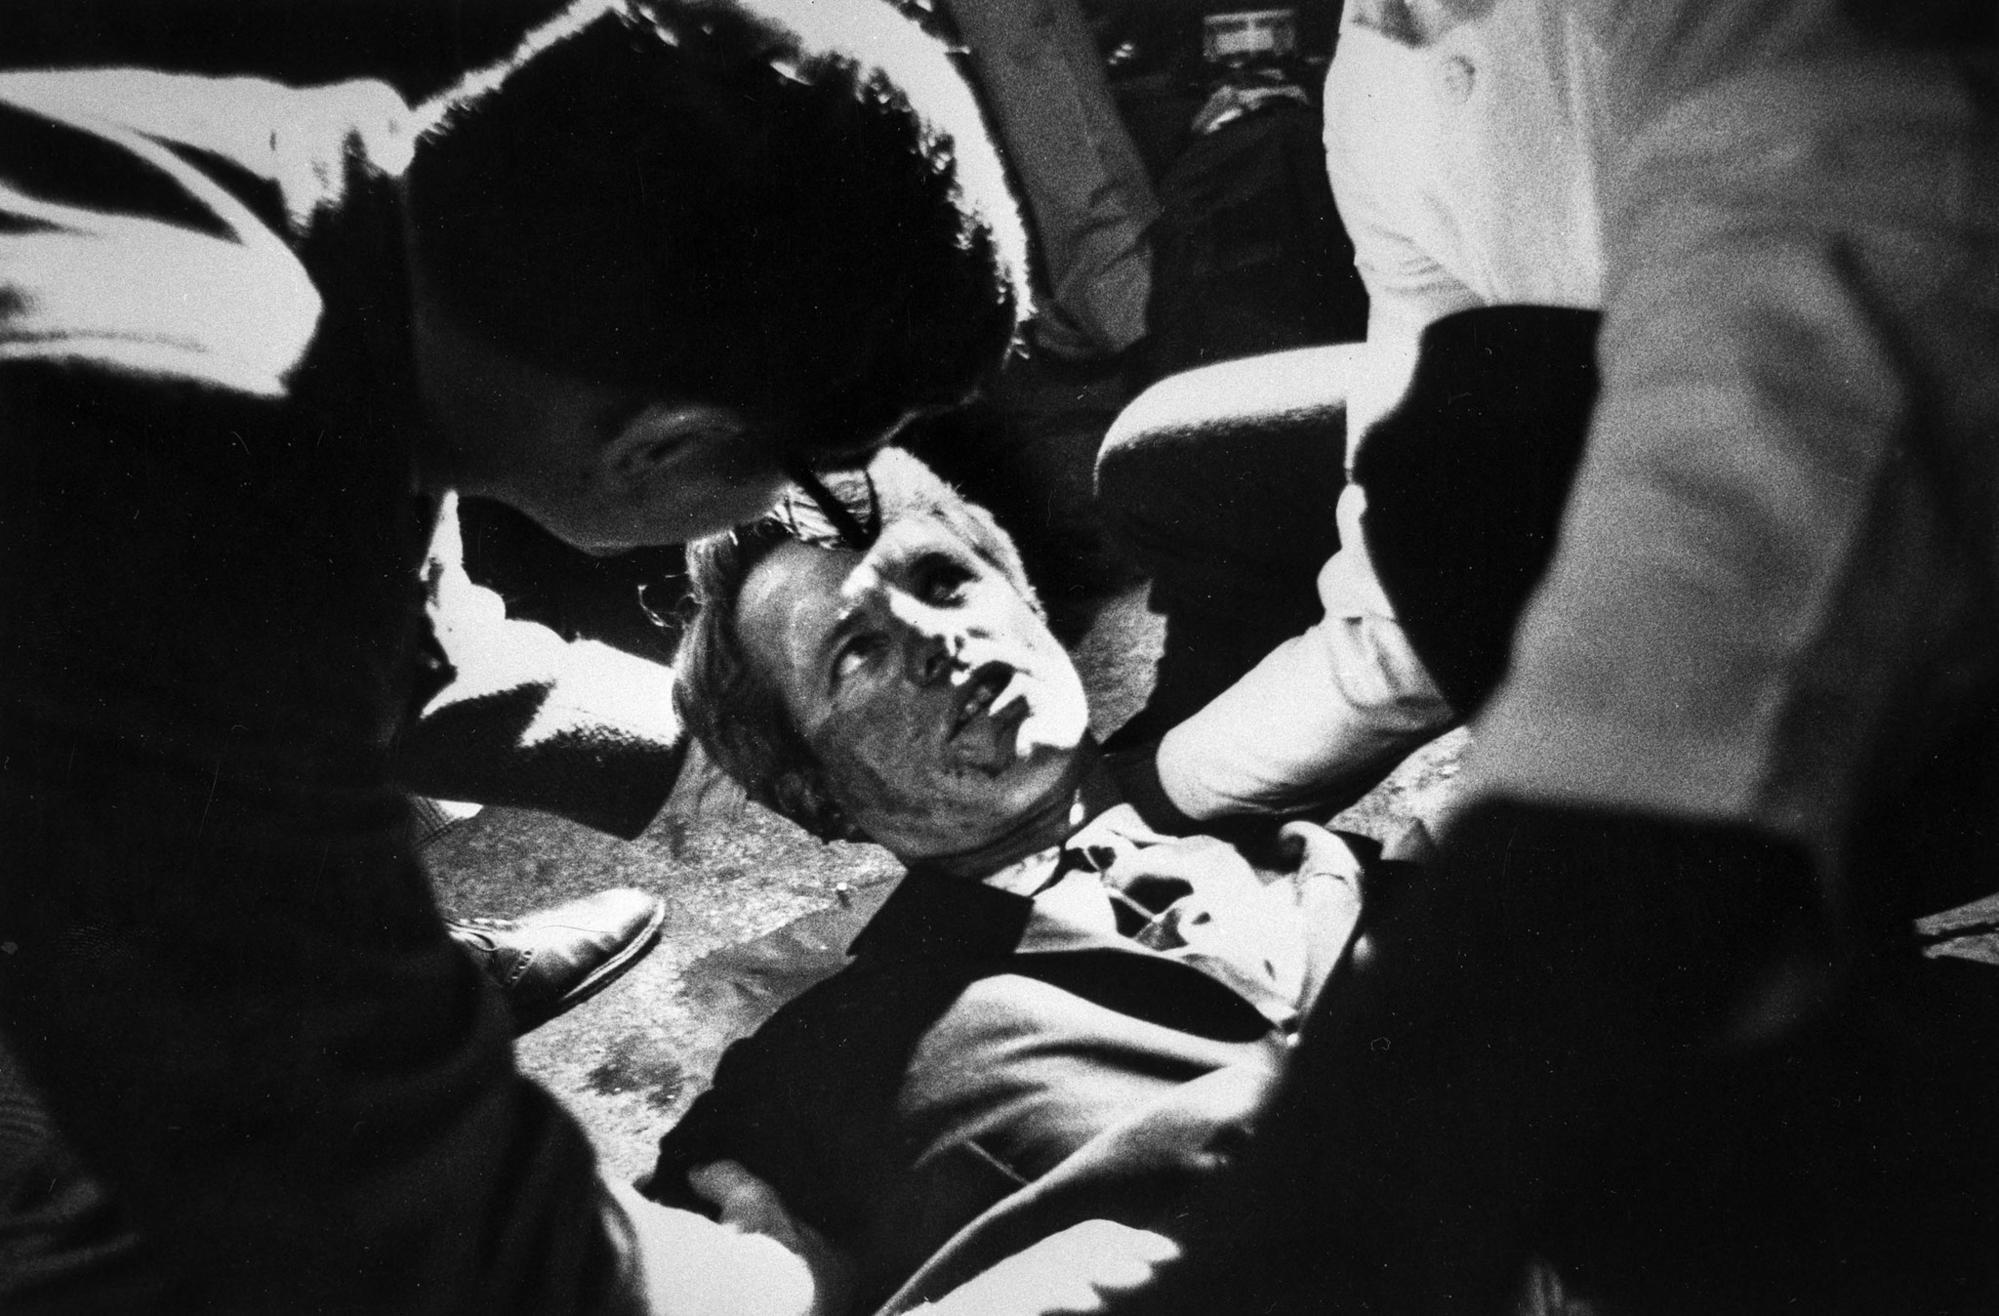 who killed bobby kennedy his son rfk jr doesn t believe it was